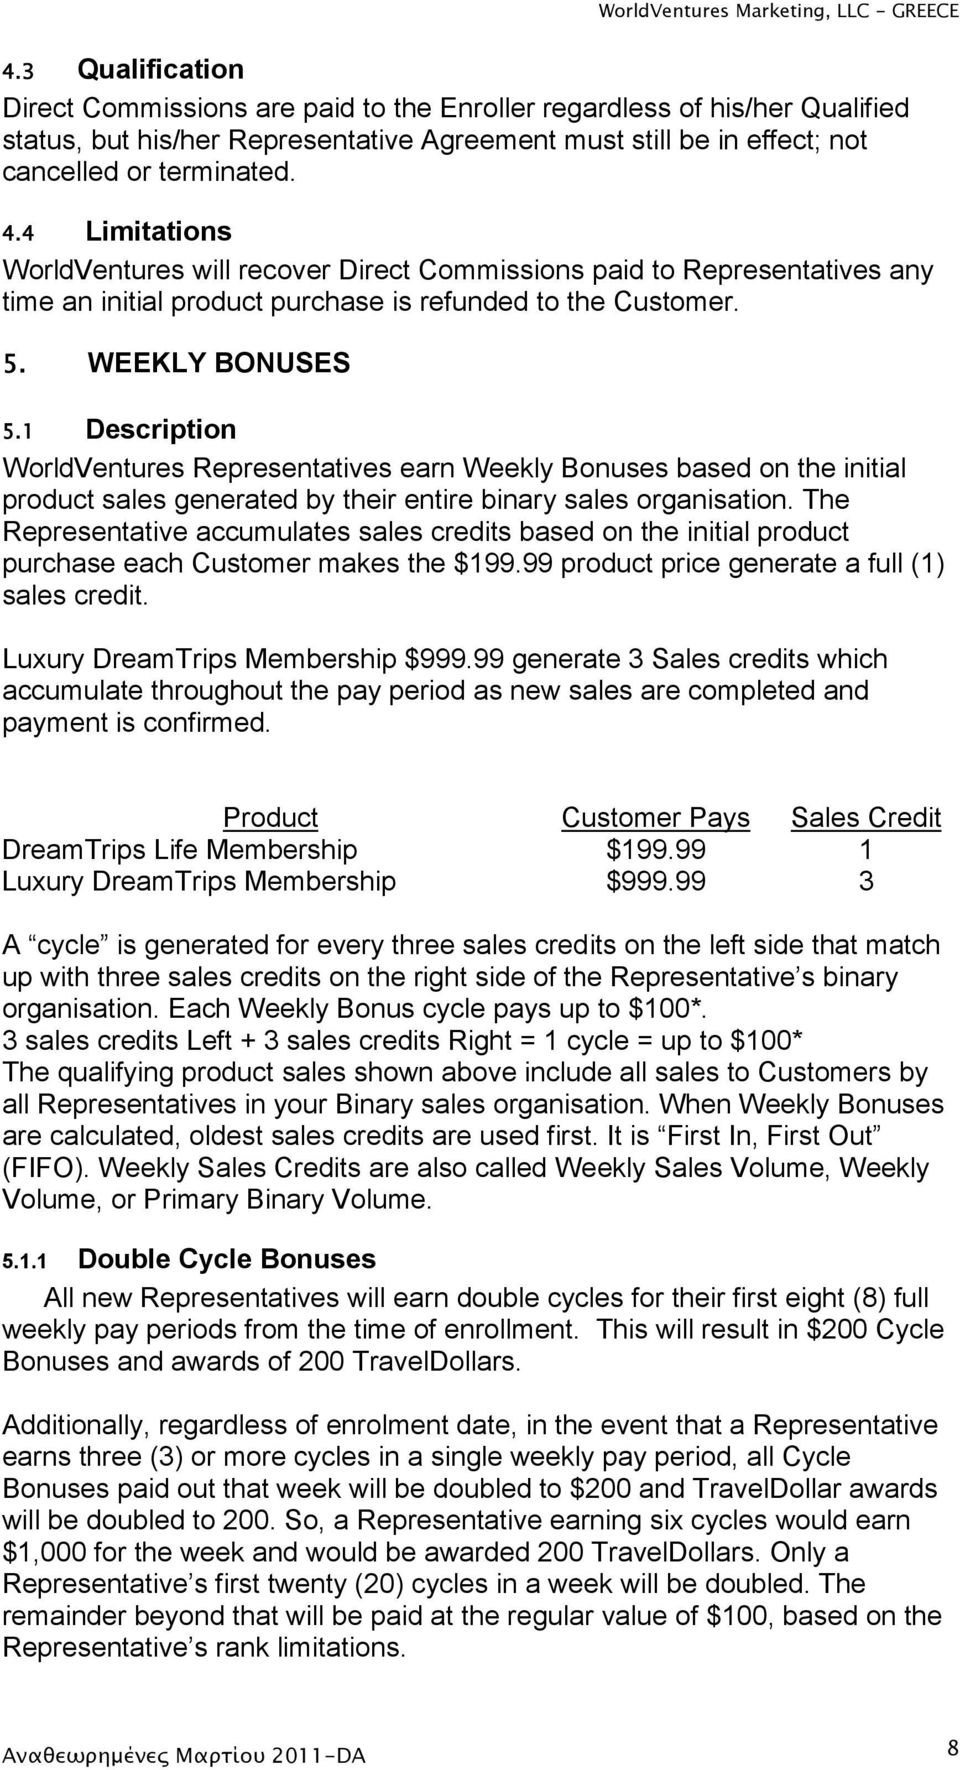 WEEKLY BONUSES Description WorldVentures Representatives earn Weekly Bonuses based on the initial product sales generated by their entire binary sales organisation.